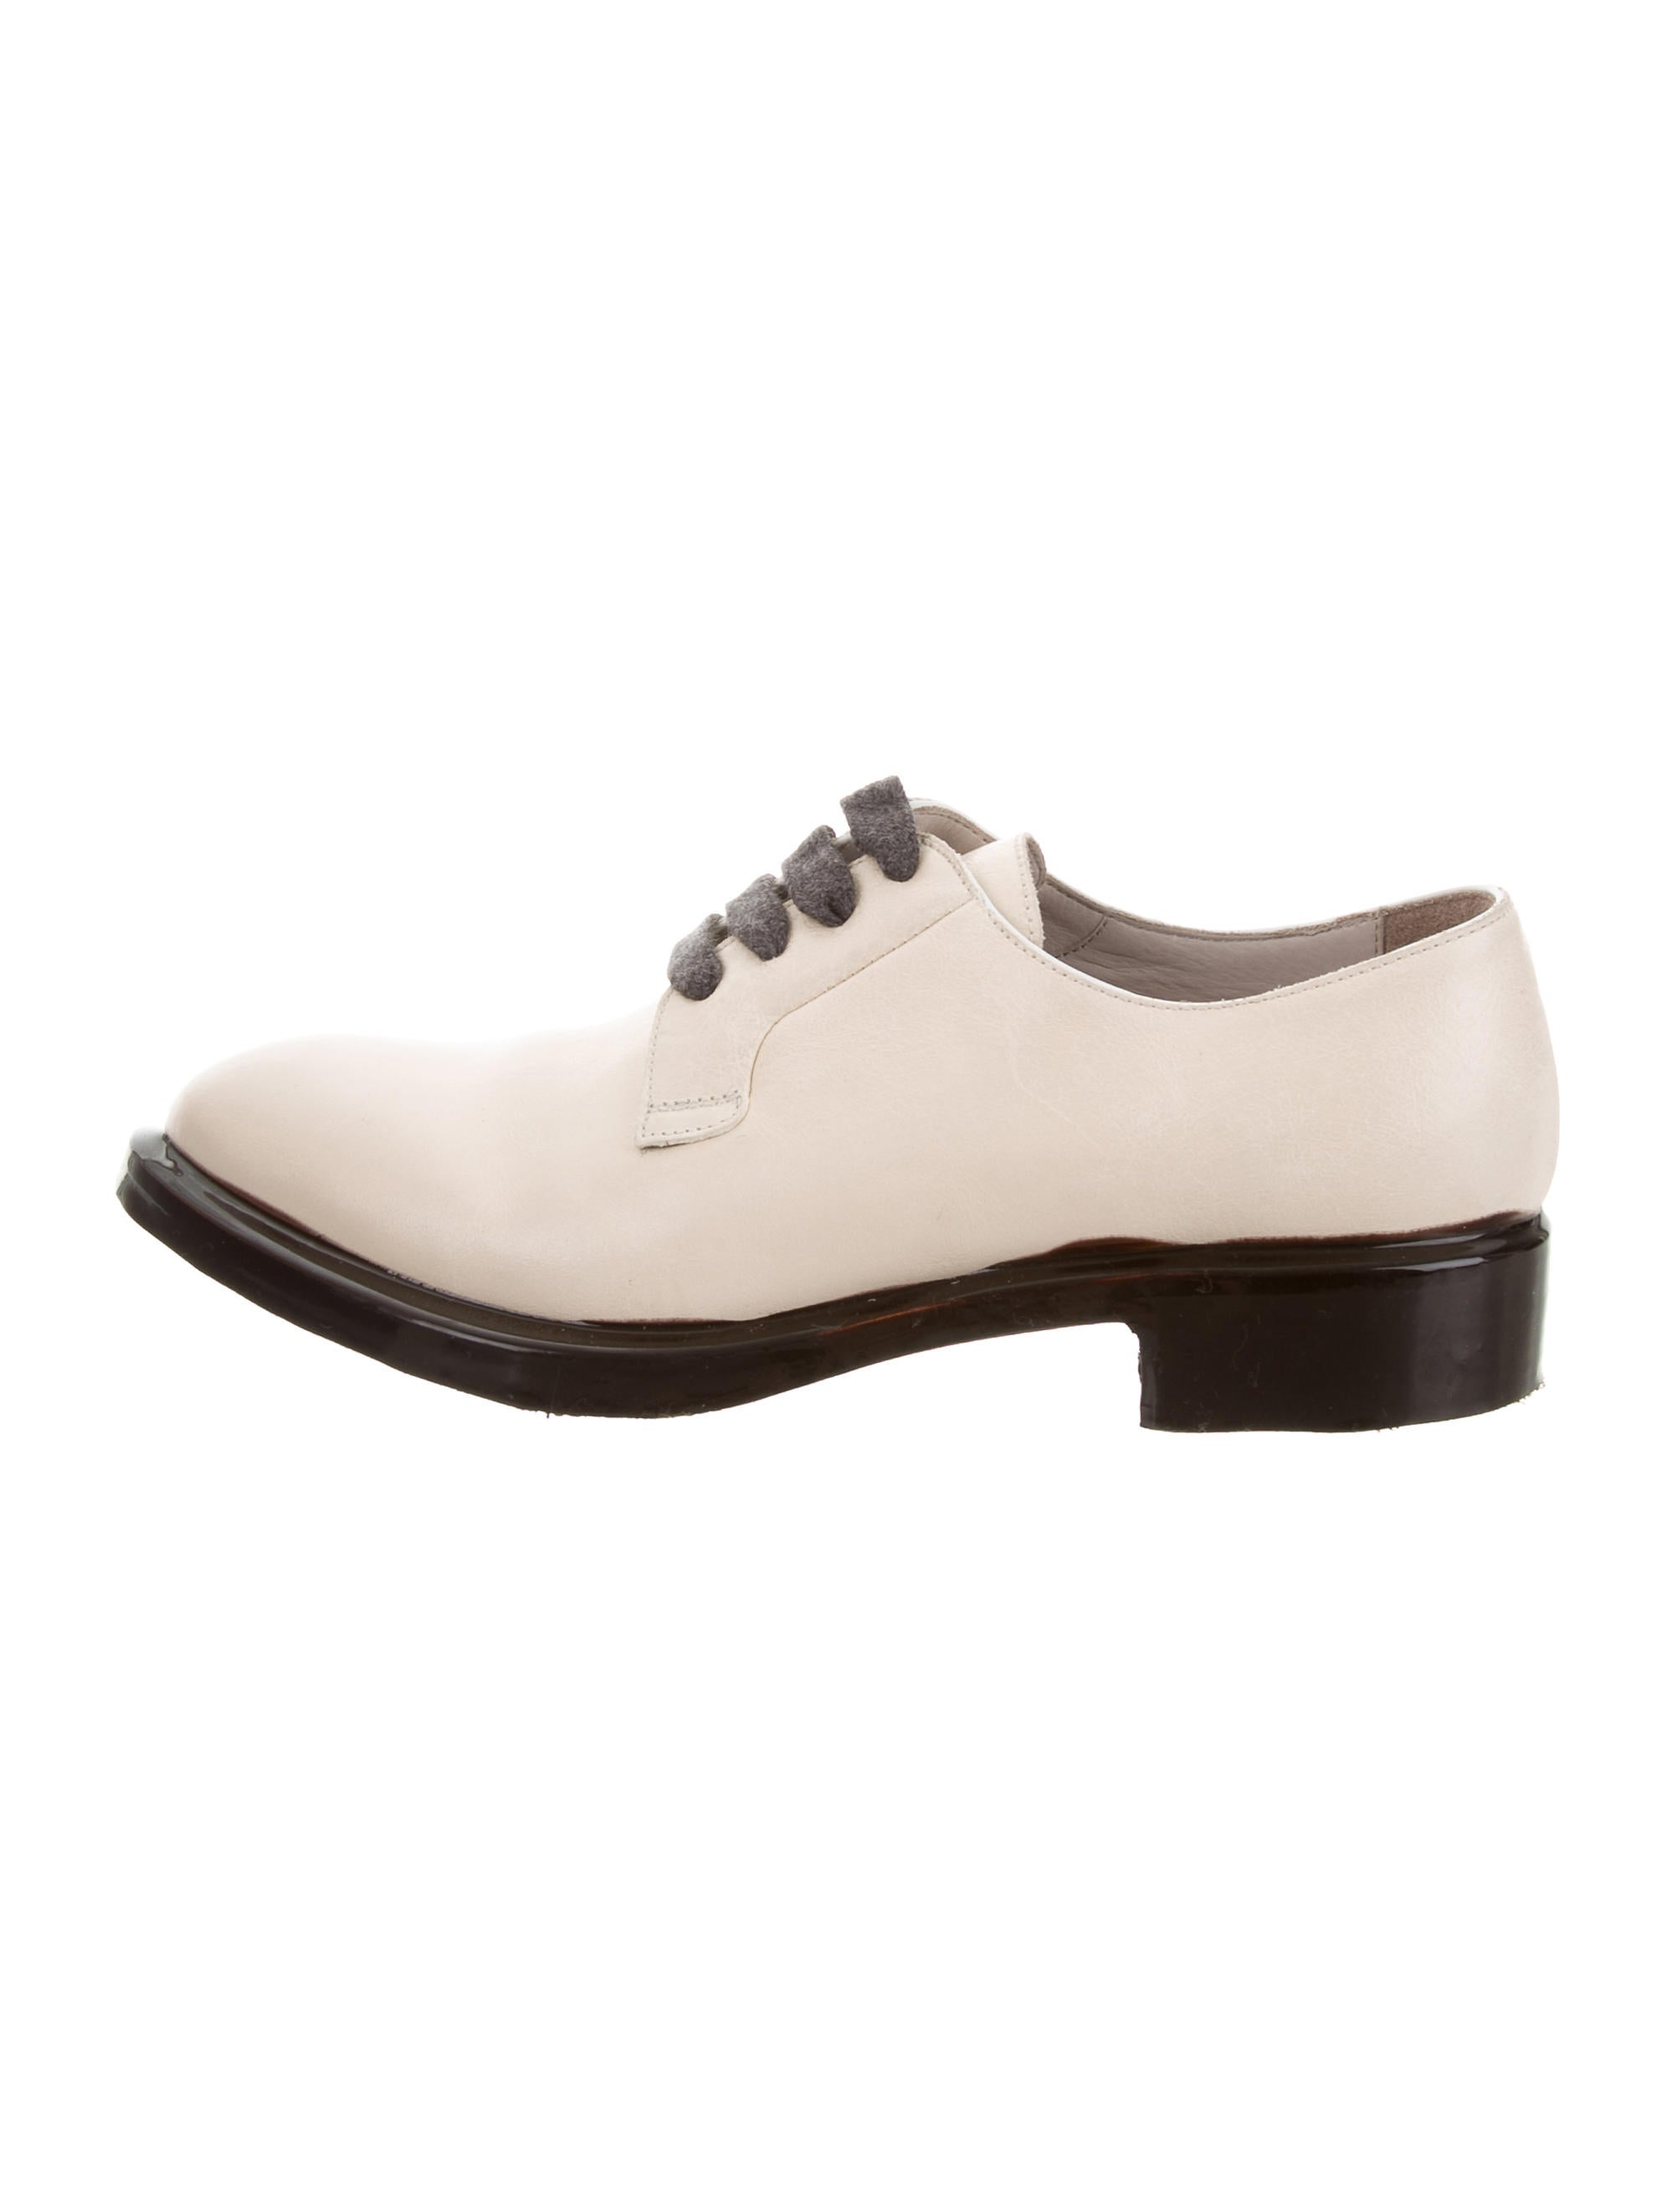 Brunello Cucinelli Leather Round-Toe Oxfords cheap 2014 newest sale tumblr sale real 2015 for sale 85fJU